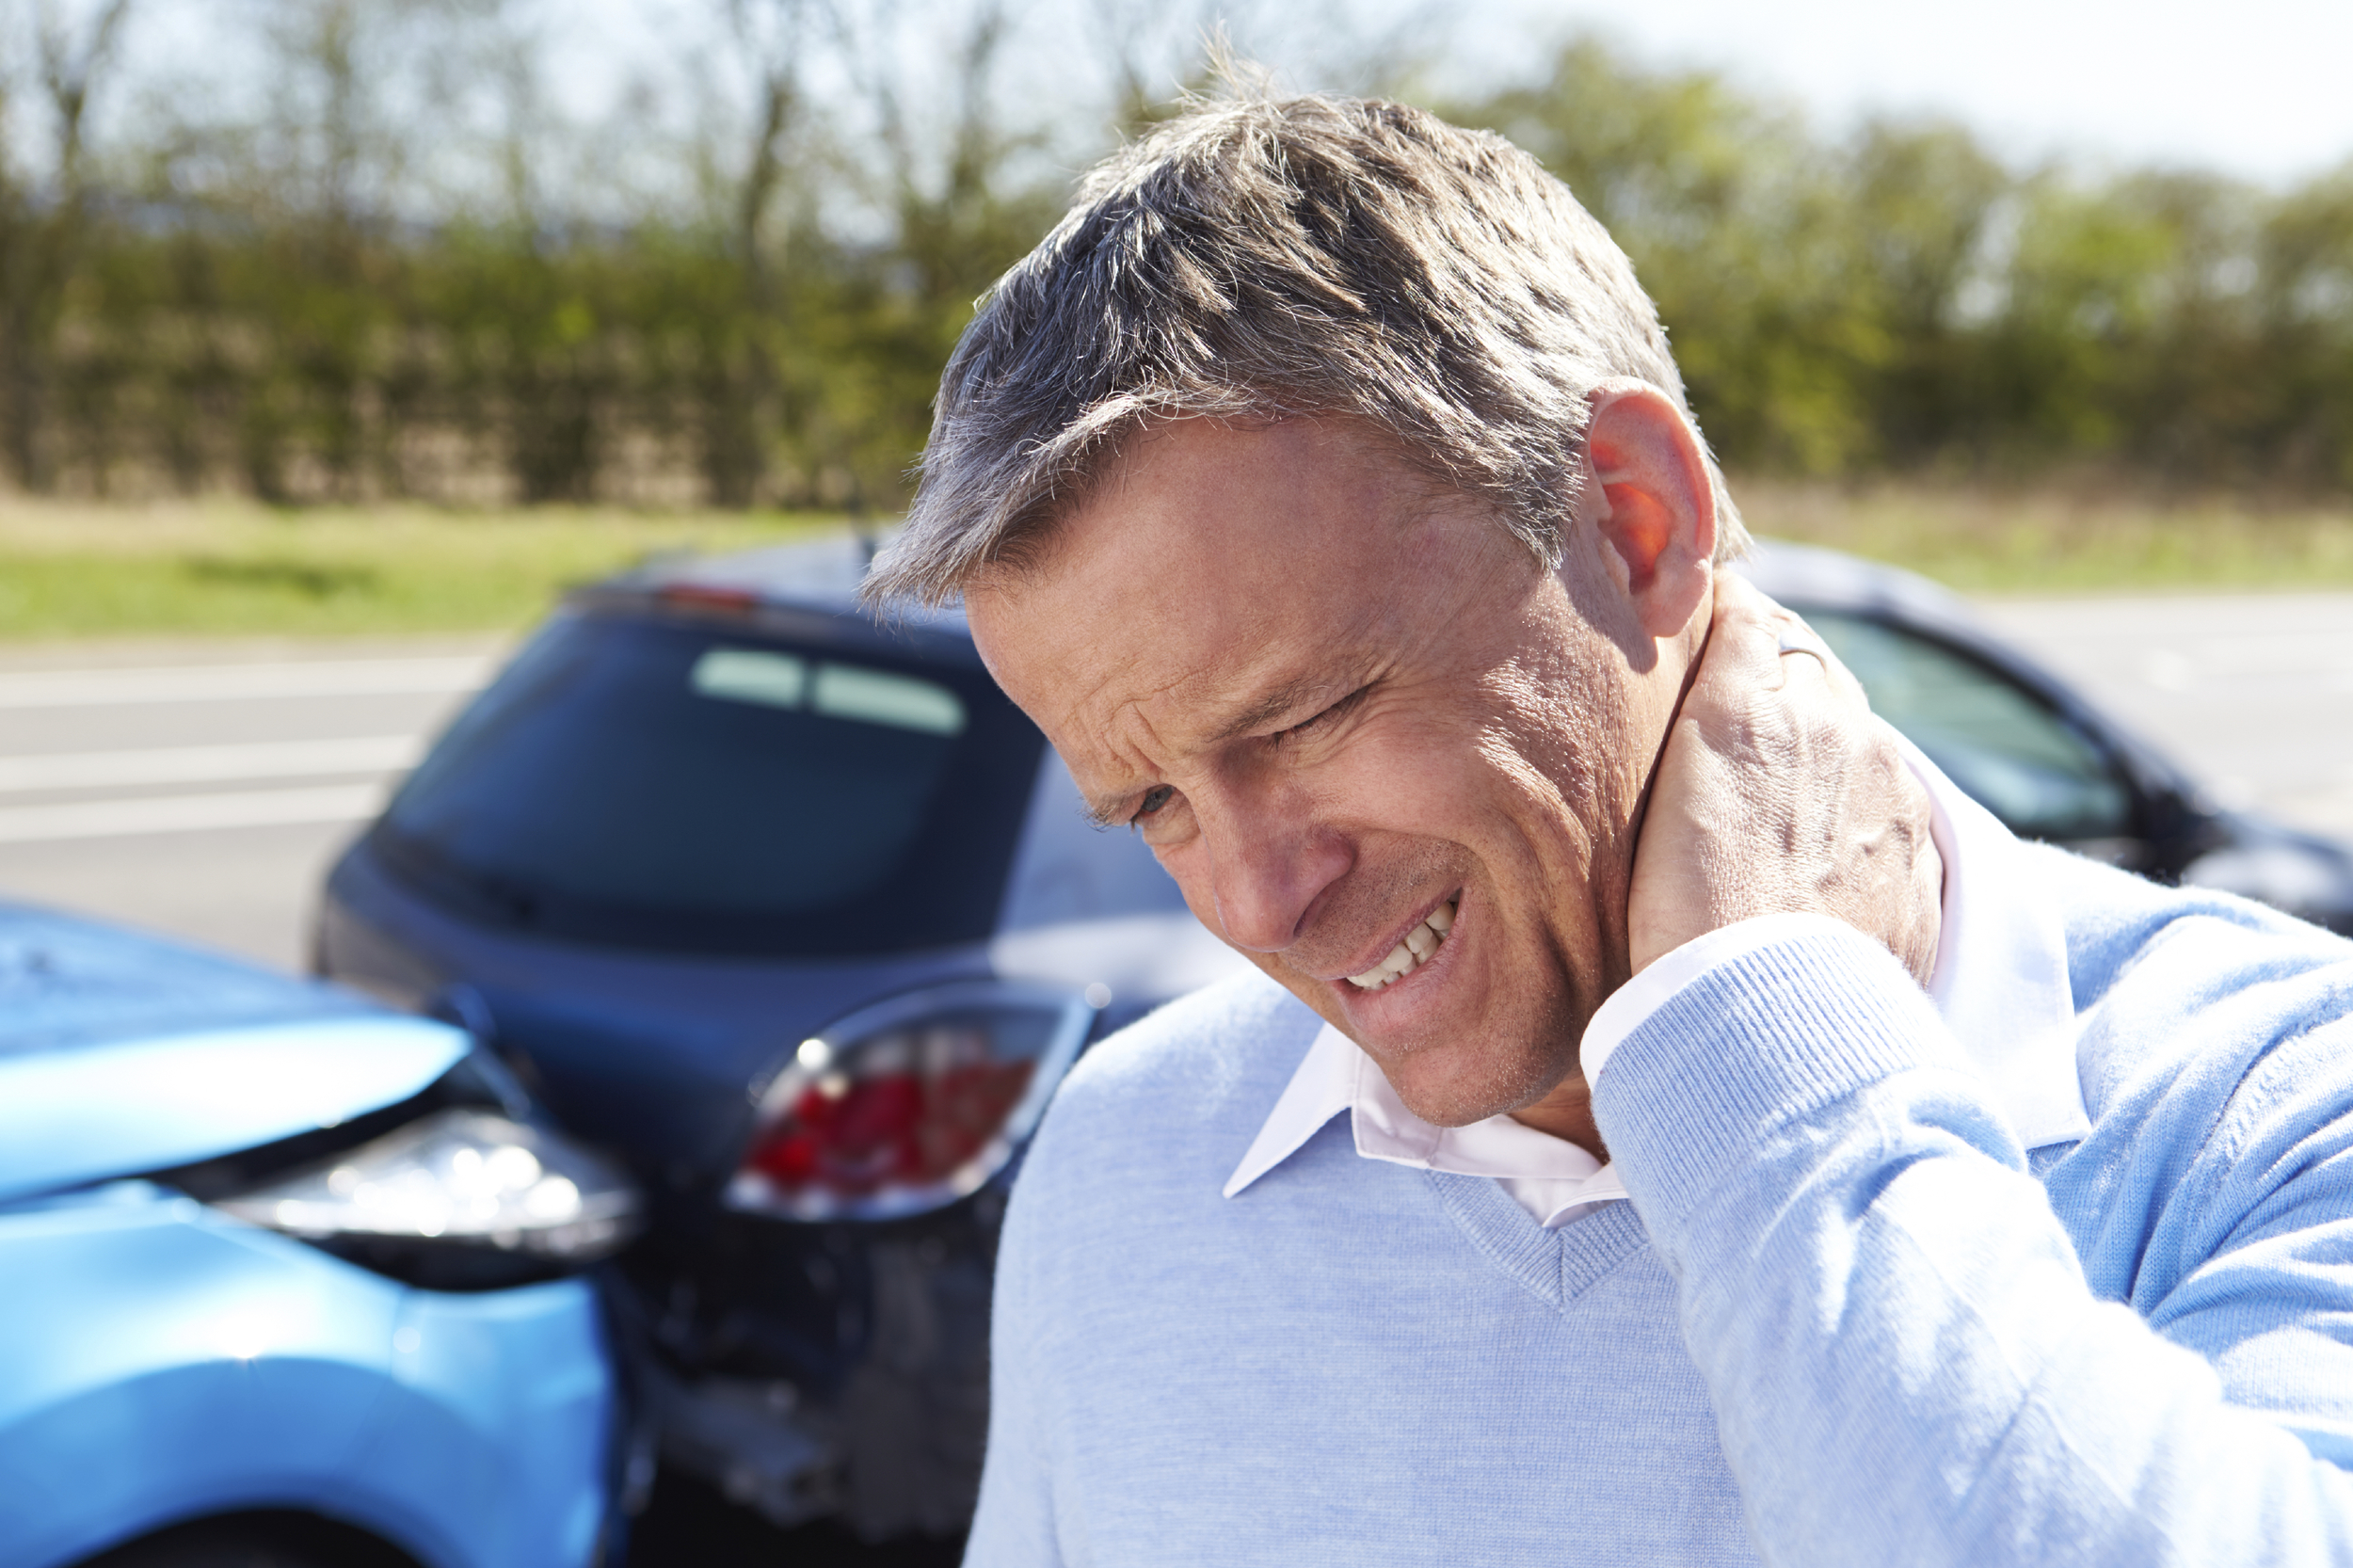 Have you been in an auto accident? You may feel  whiplash  symptoms well after the injury